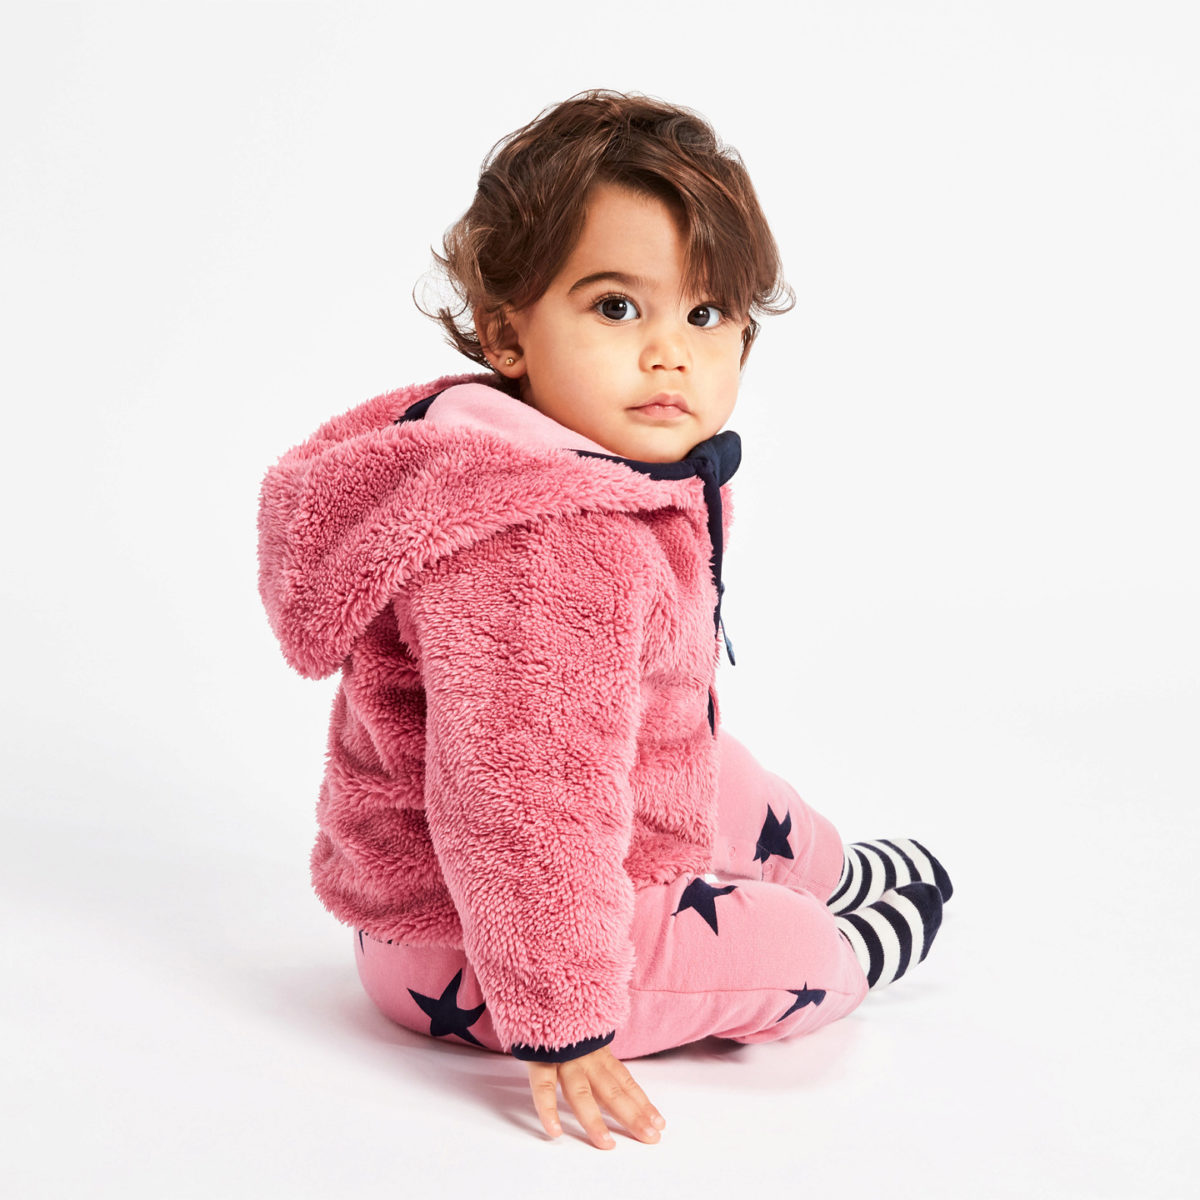 26 pieces of stylish clothing for your little ones to rock during the colder months | stylish and warm clothing your little one will look adorable in.